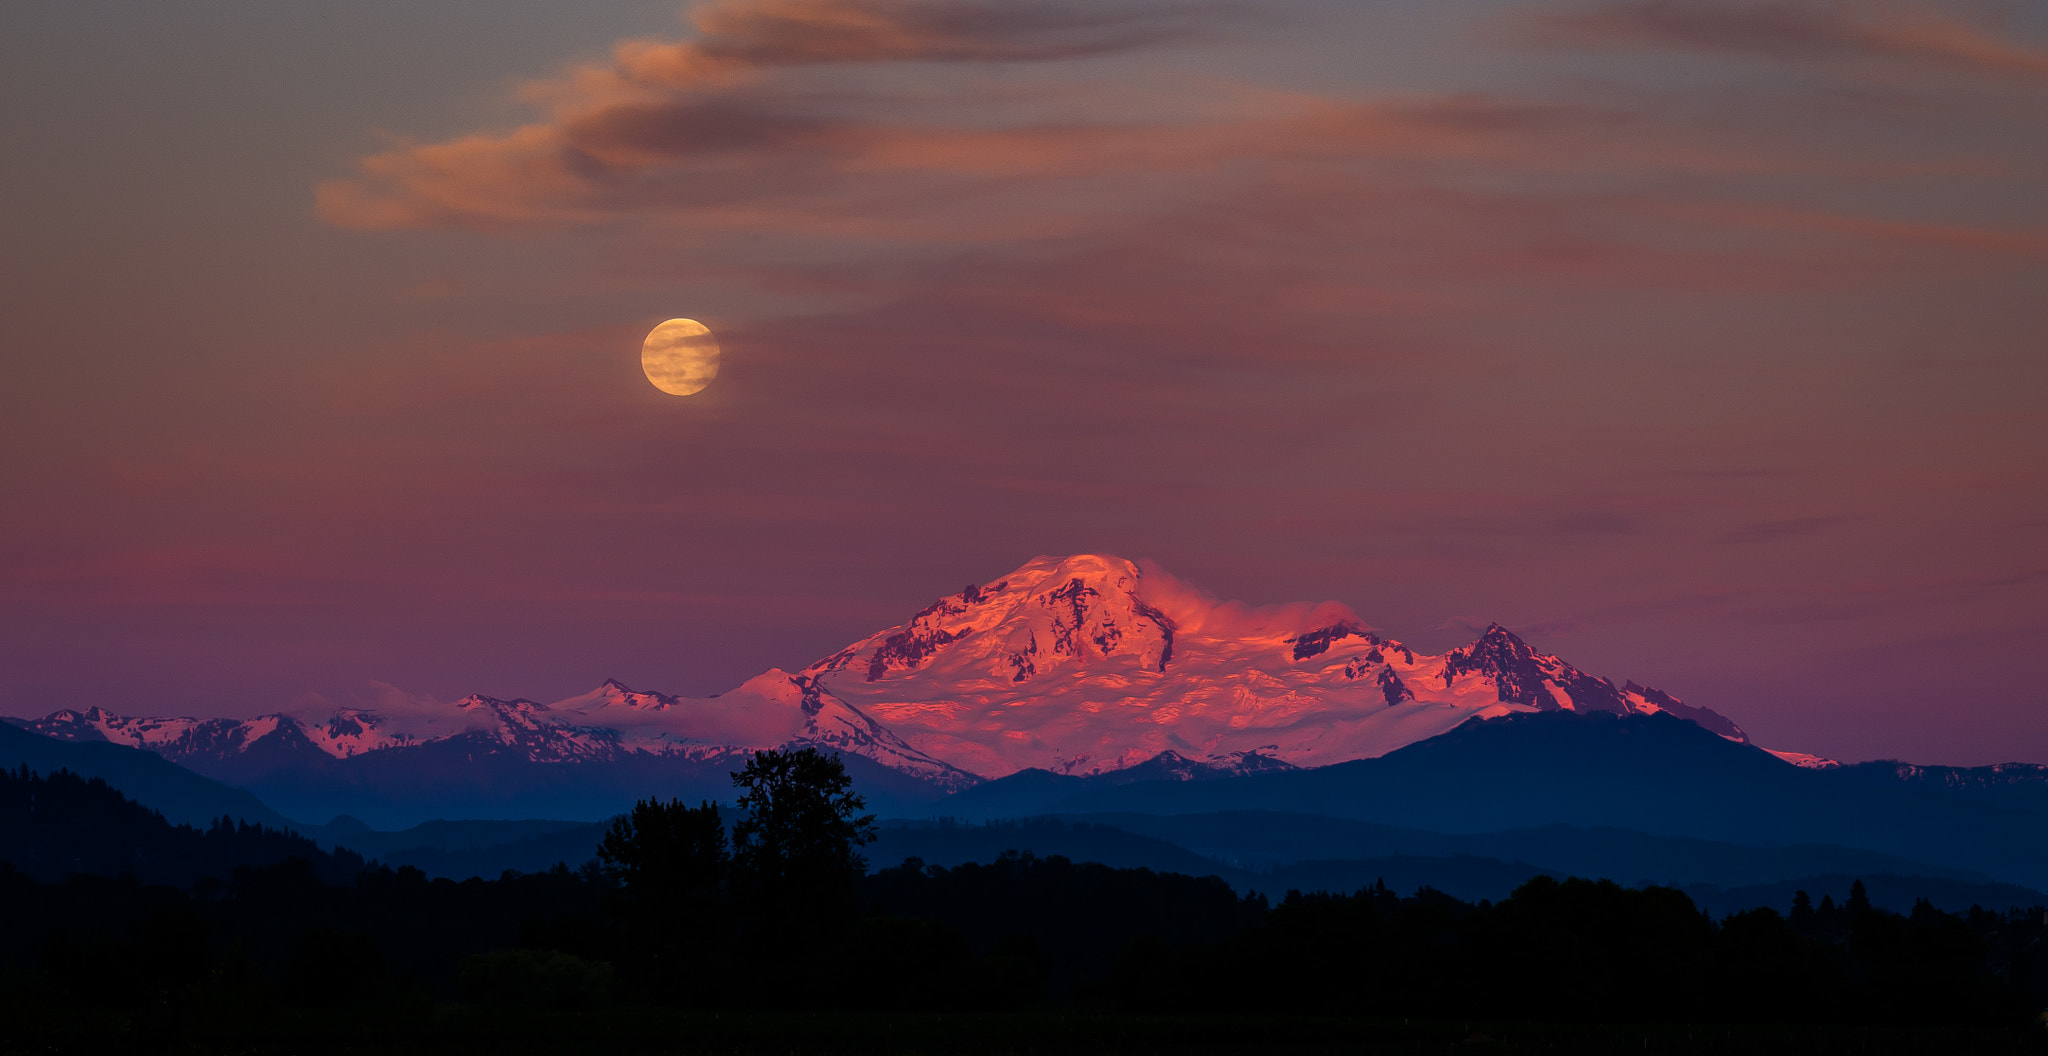 Photograph Super Moonrise 2013 by David D Dickie on 500px